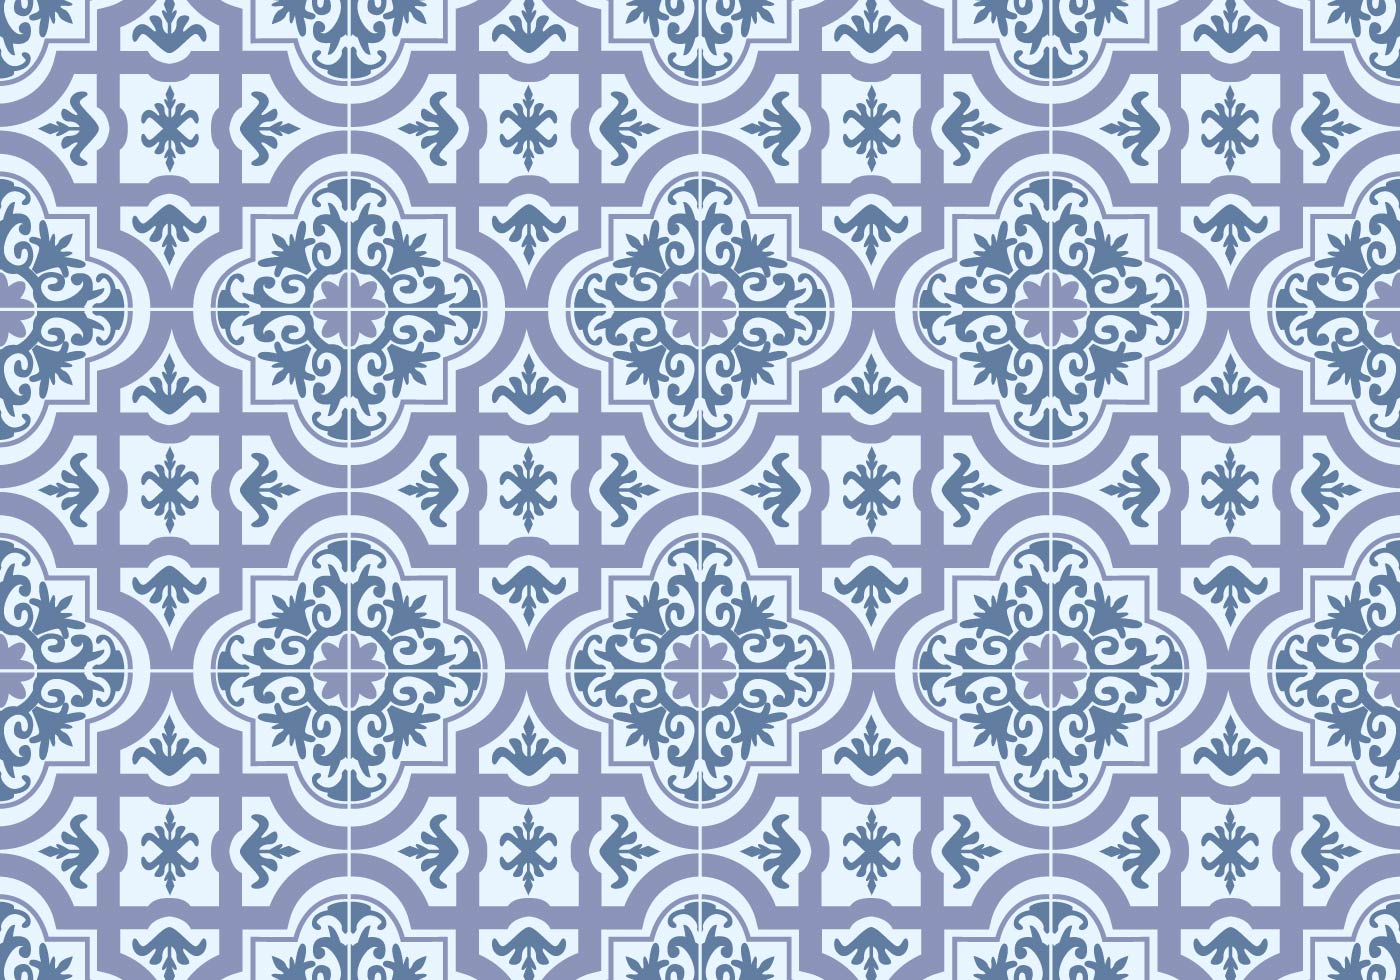 Black And Blue Floral Wallpaper Azulejos Tile Vector Download Free Vector Art Stock